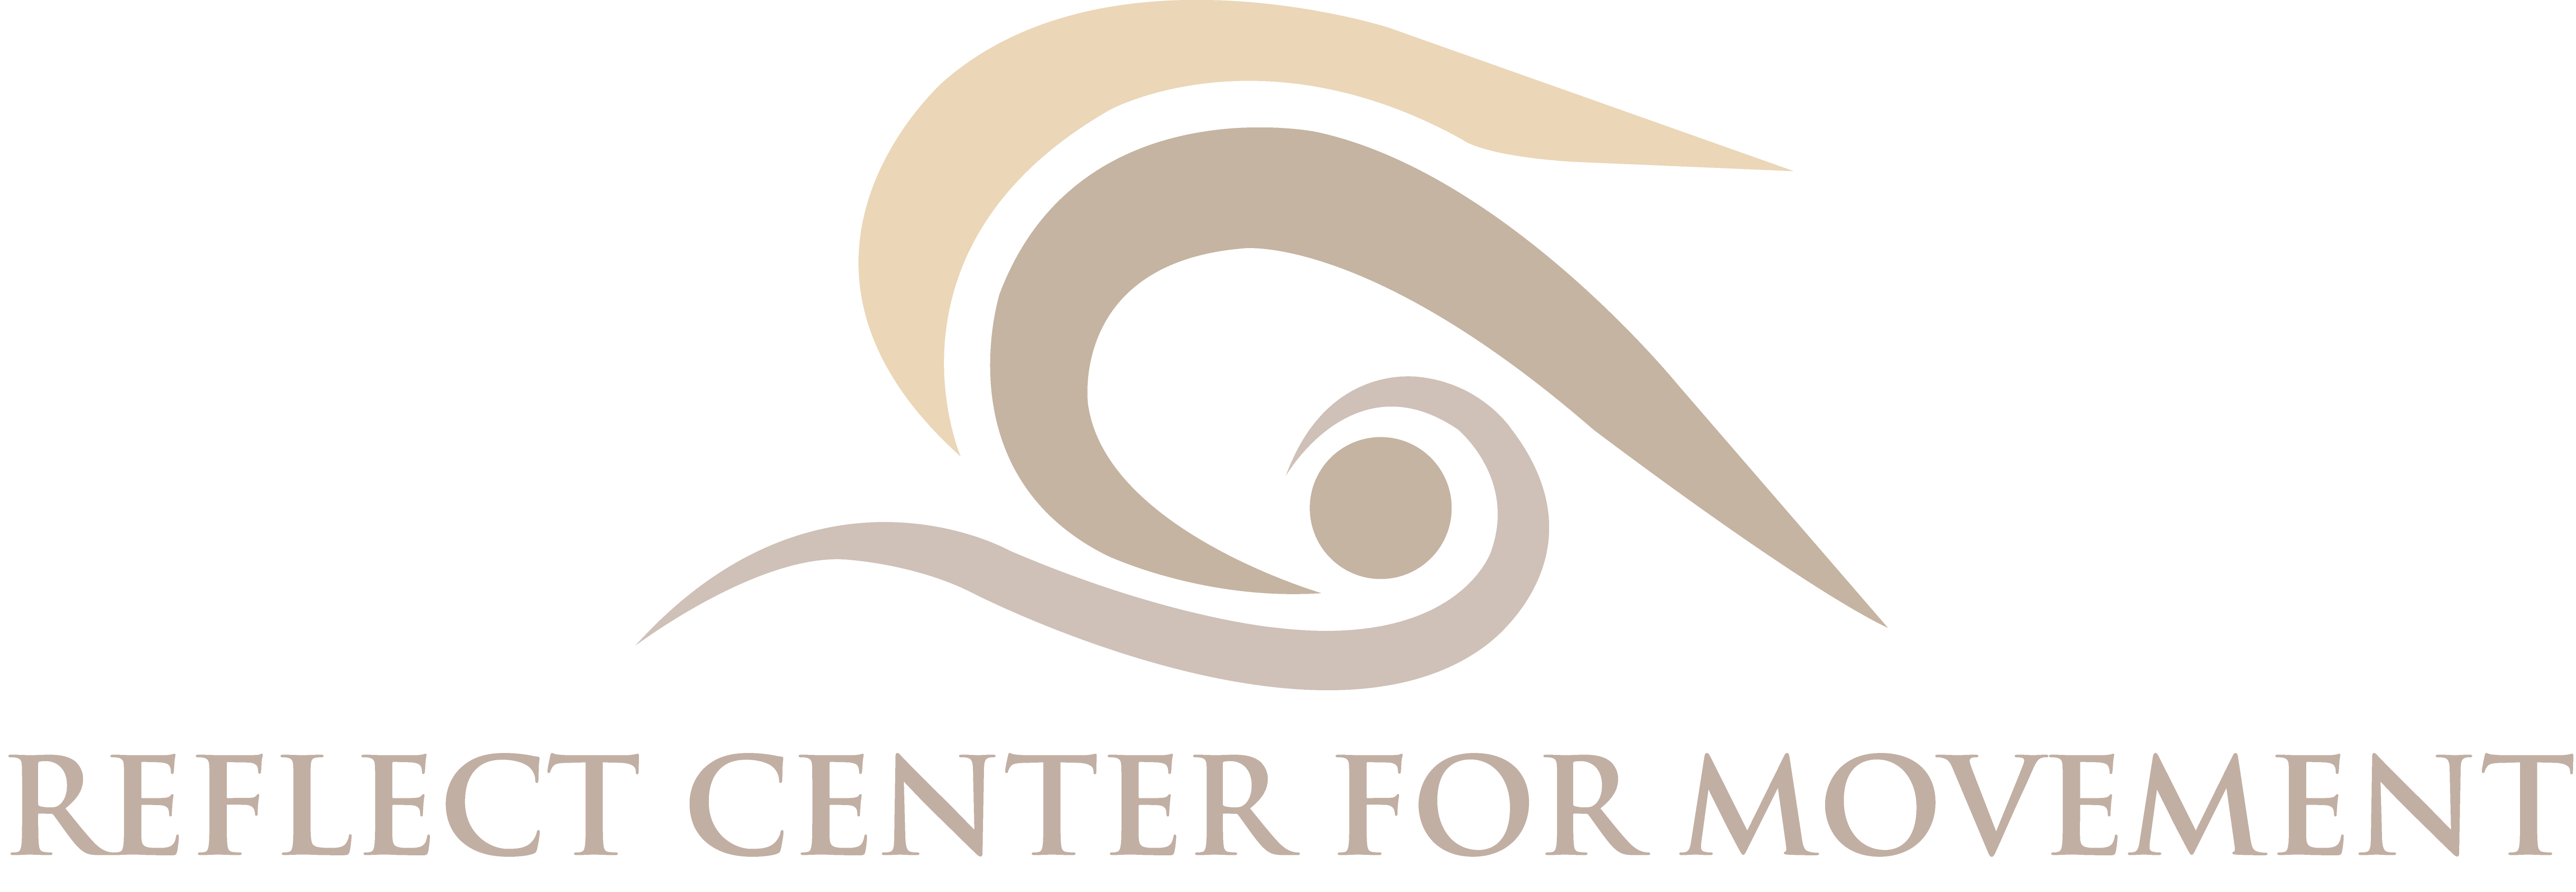 Reflect Center for Movement